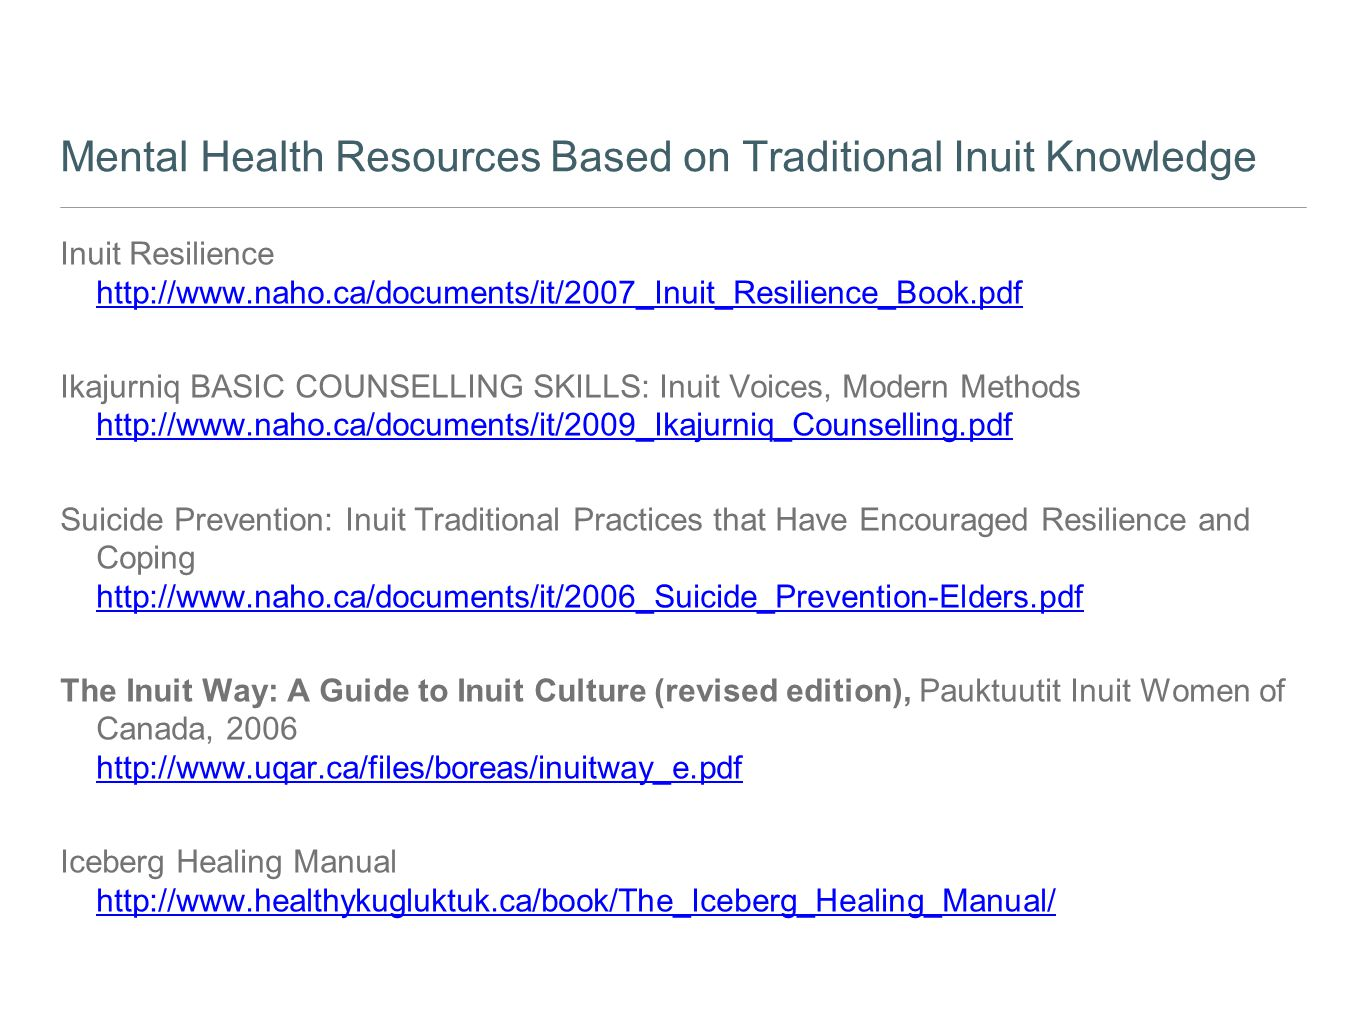 Mental Health Resources Based on Traditional Inuit Knowledge Inuit Resilience http://www.naho.ca/documents/it/2007_Inuit_Resilience_Book.pdf http://ww